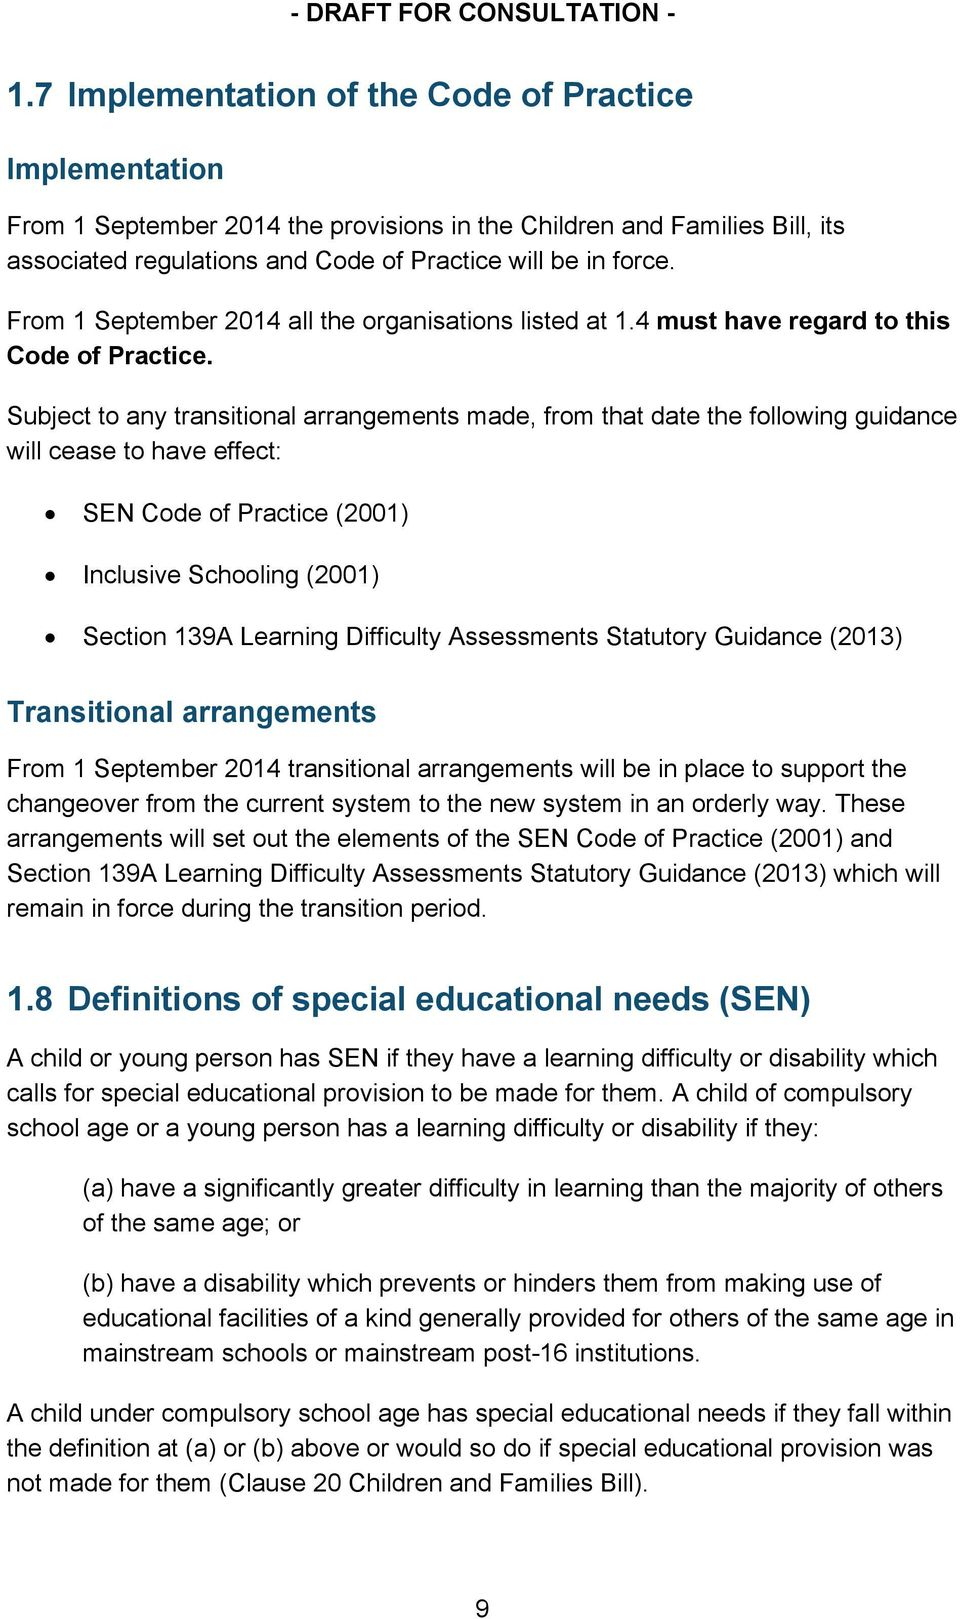 Subject to any transitional arrangements made, from that date the following guidance will cease to have effect: SEN Code of Practice (2001) Inclusive Schooling (2001) Section 139A Learning Difficulty